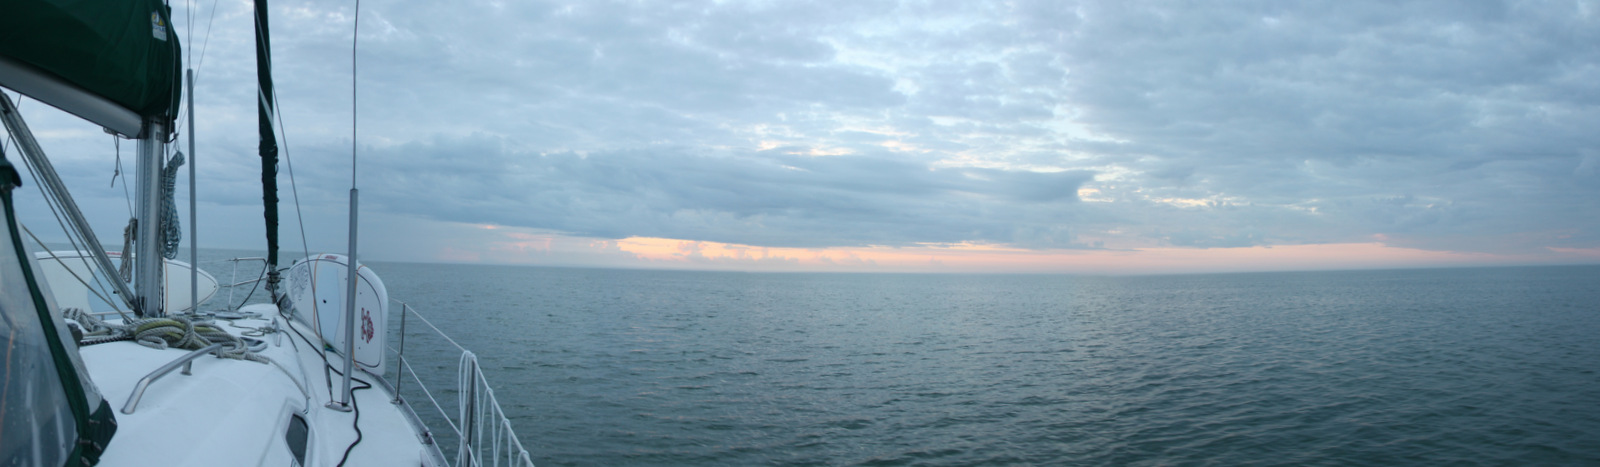 The view from the boat as we woke up.